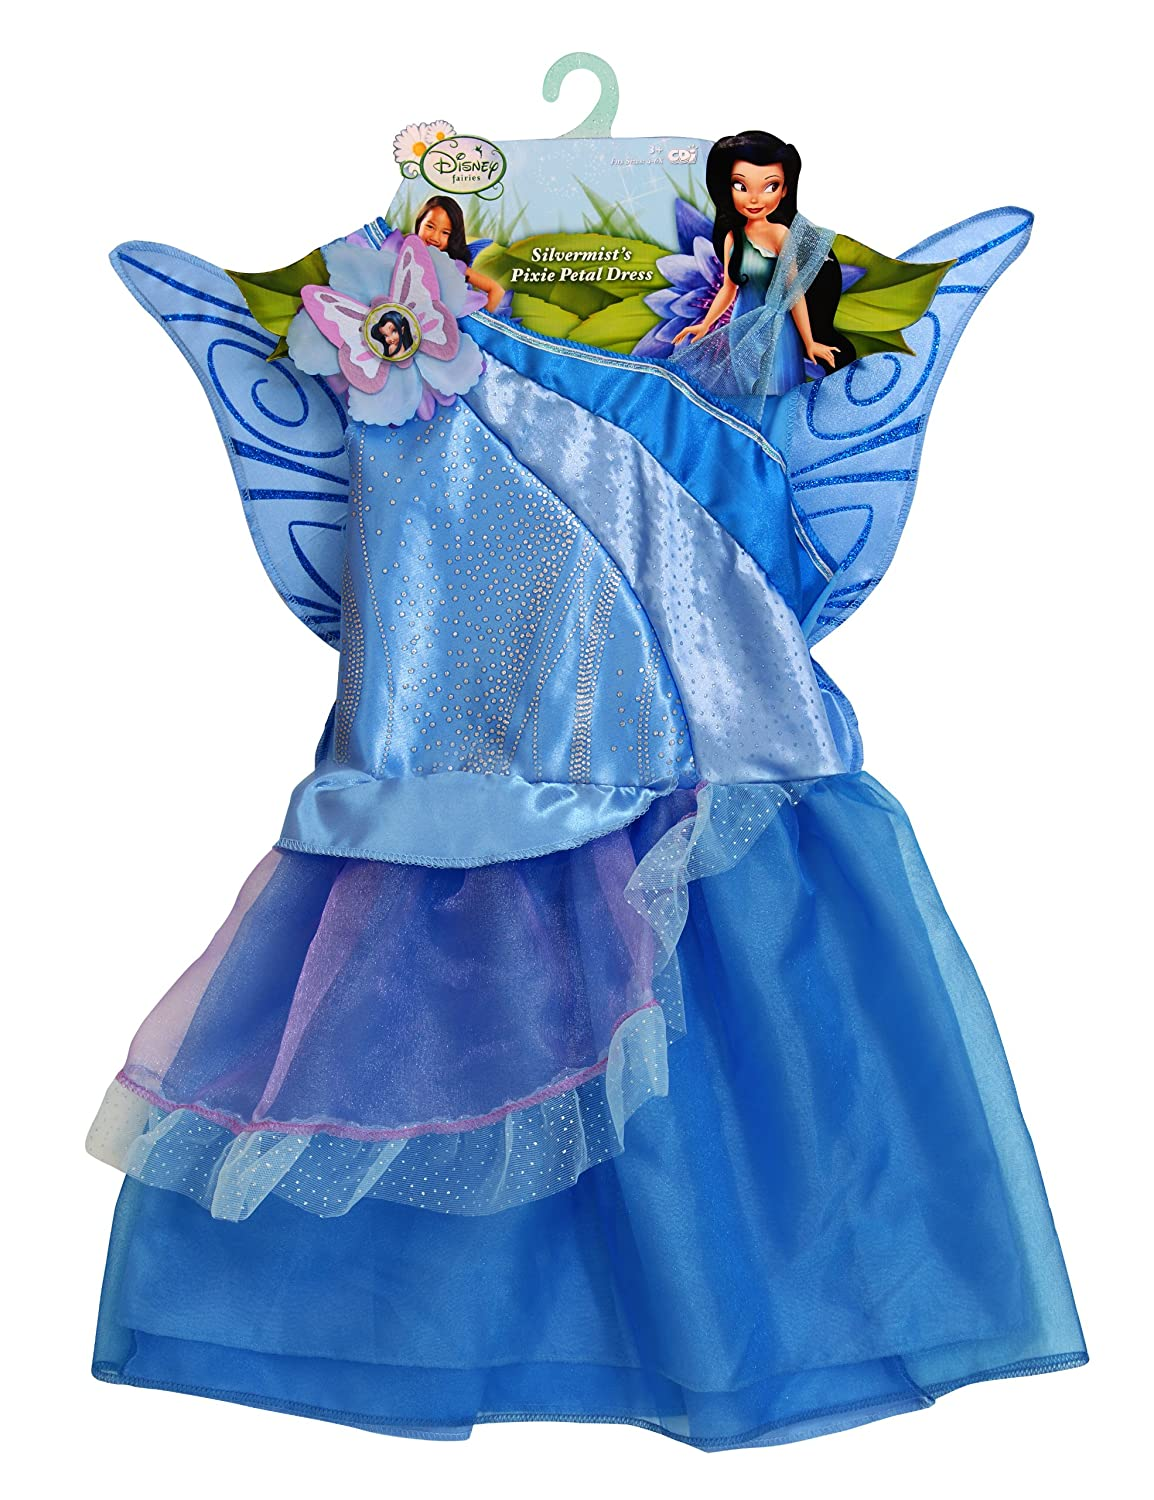 sc 1 st  Amazon.ca & Disney Fairies Silvermist Pixie Petal Dress (4X-6X): Amazon.ca: Baby